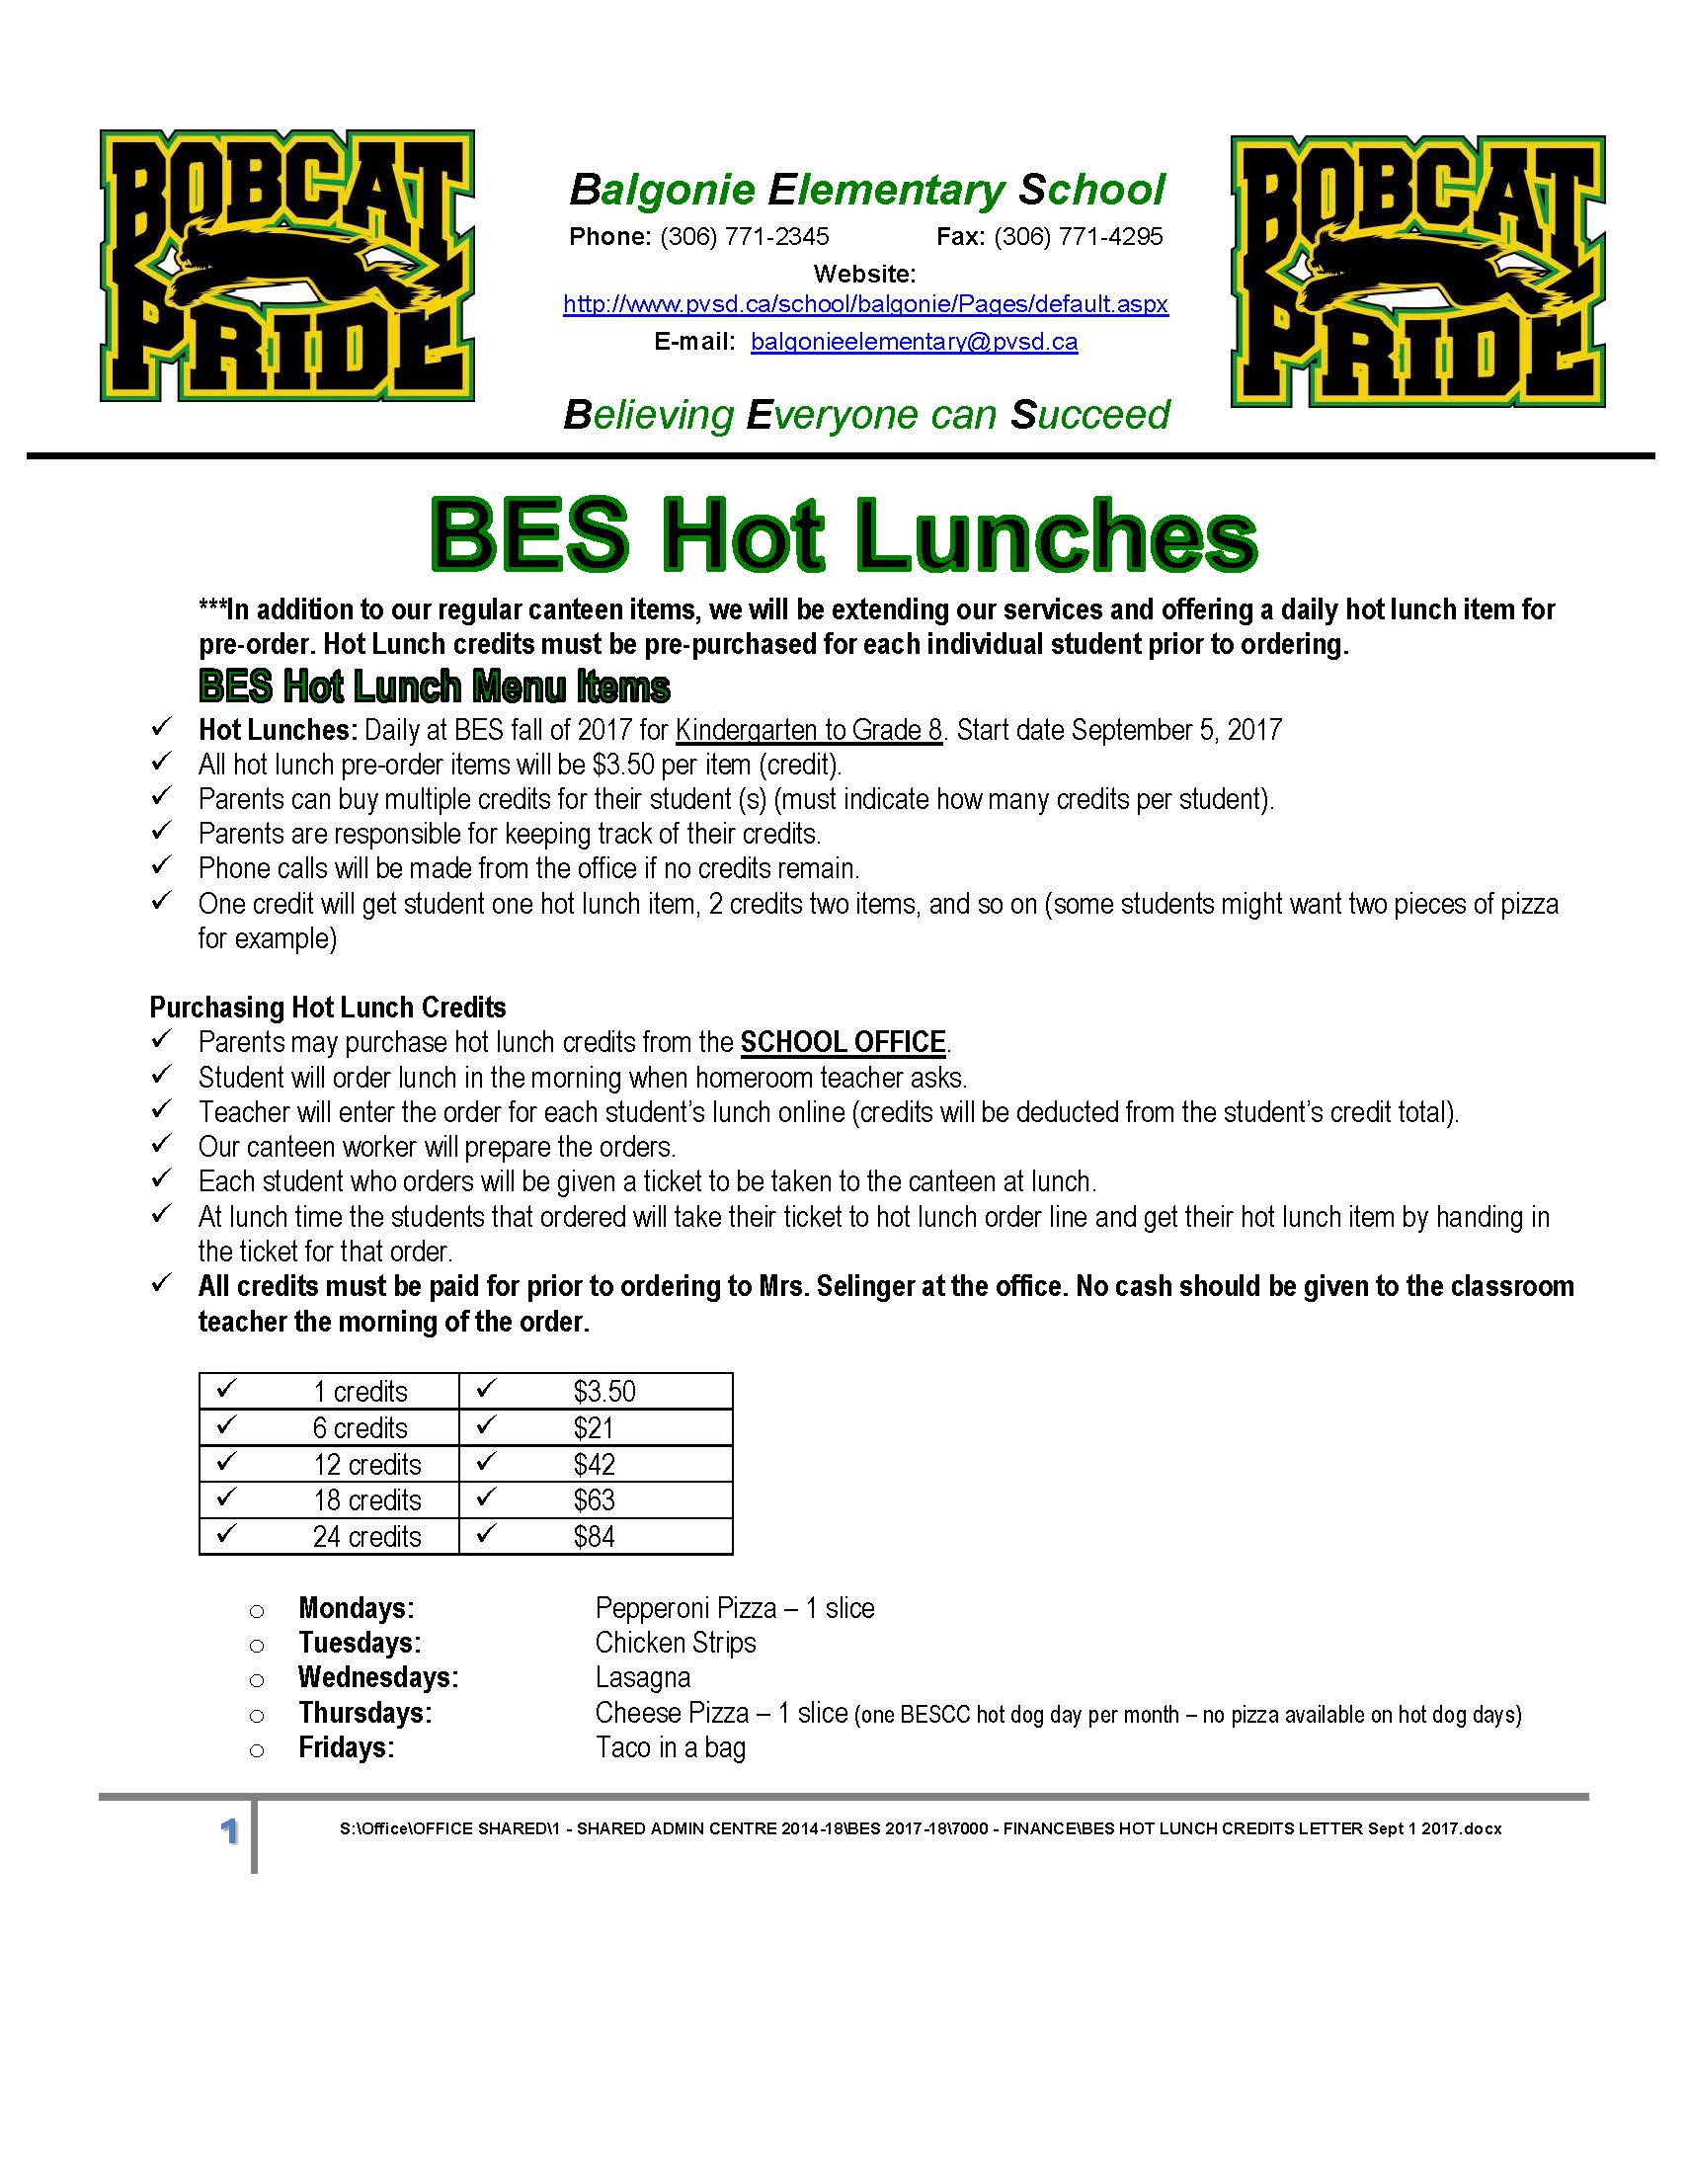 BES HOT LUNCH CREDITS LETTER Sept 1 2017.jpg